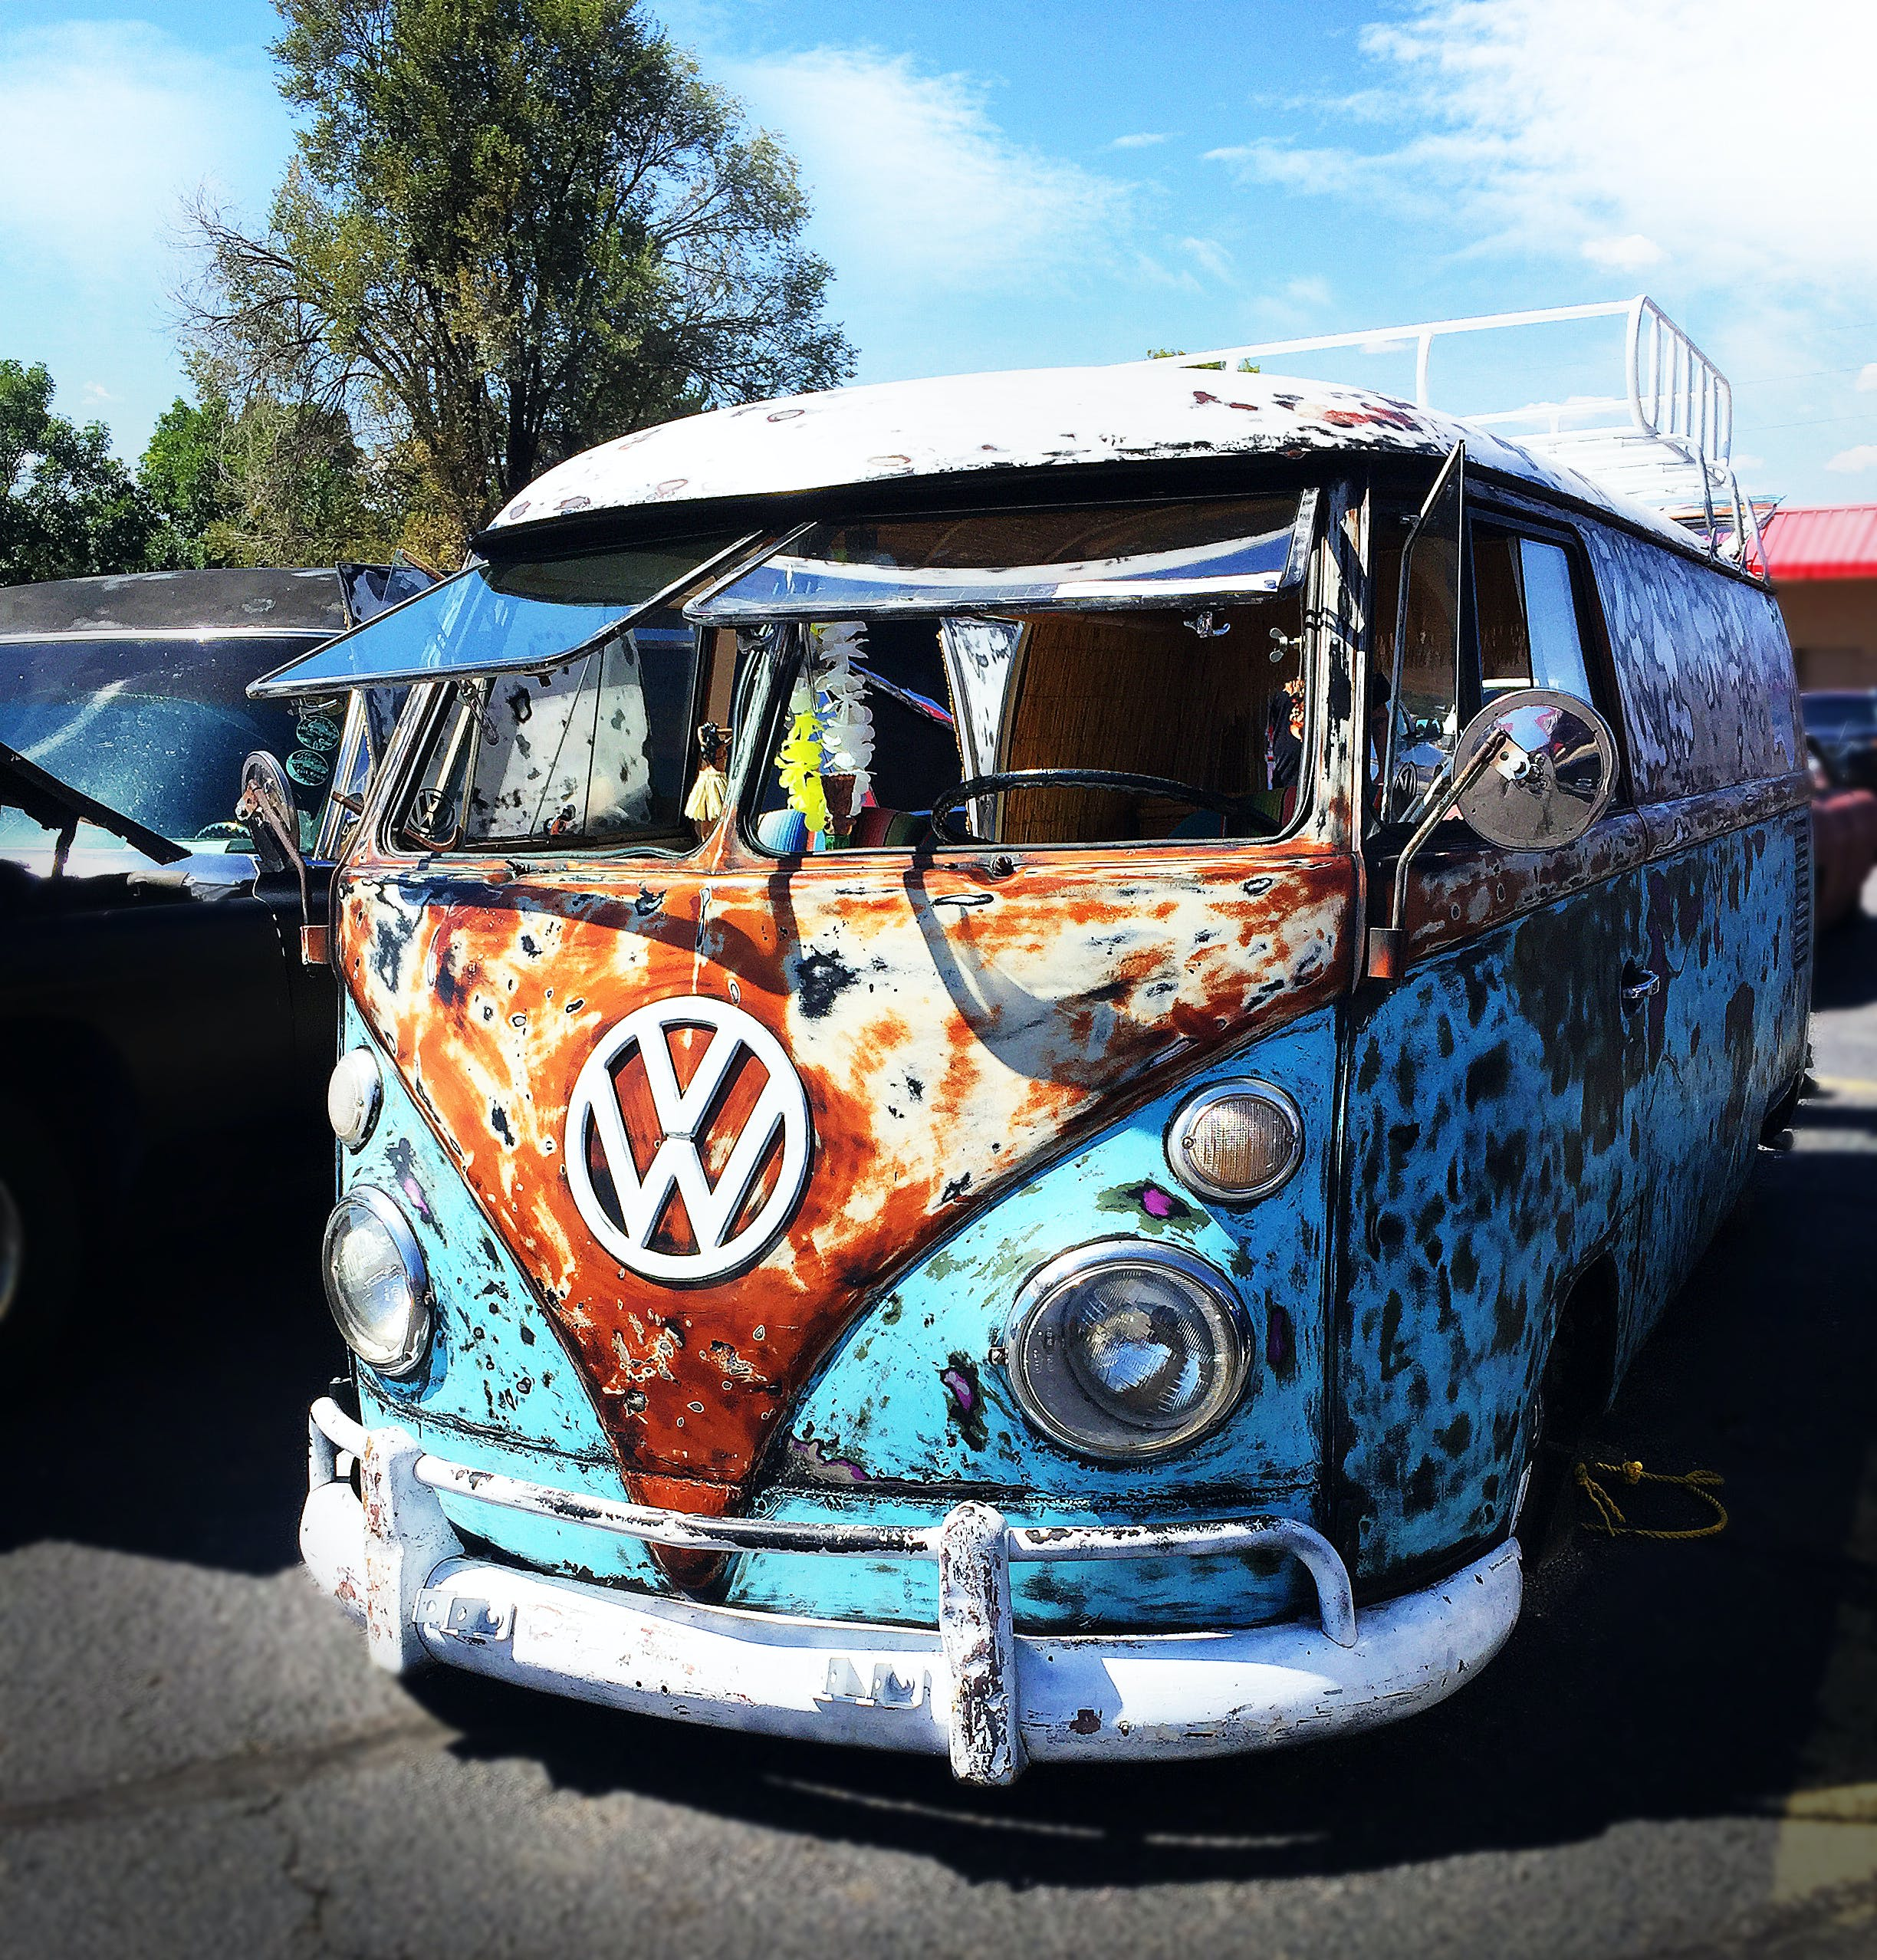 Free stock photo of bus, car show, old, rust